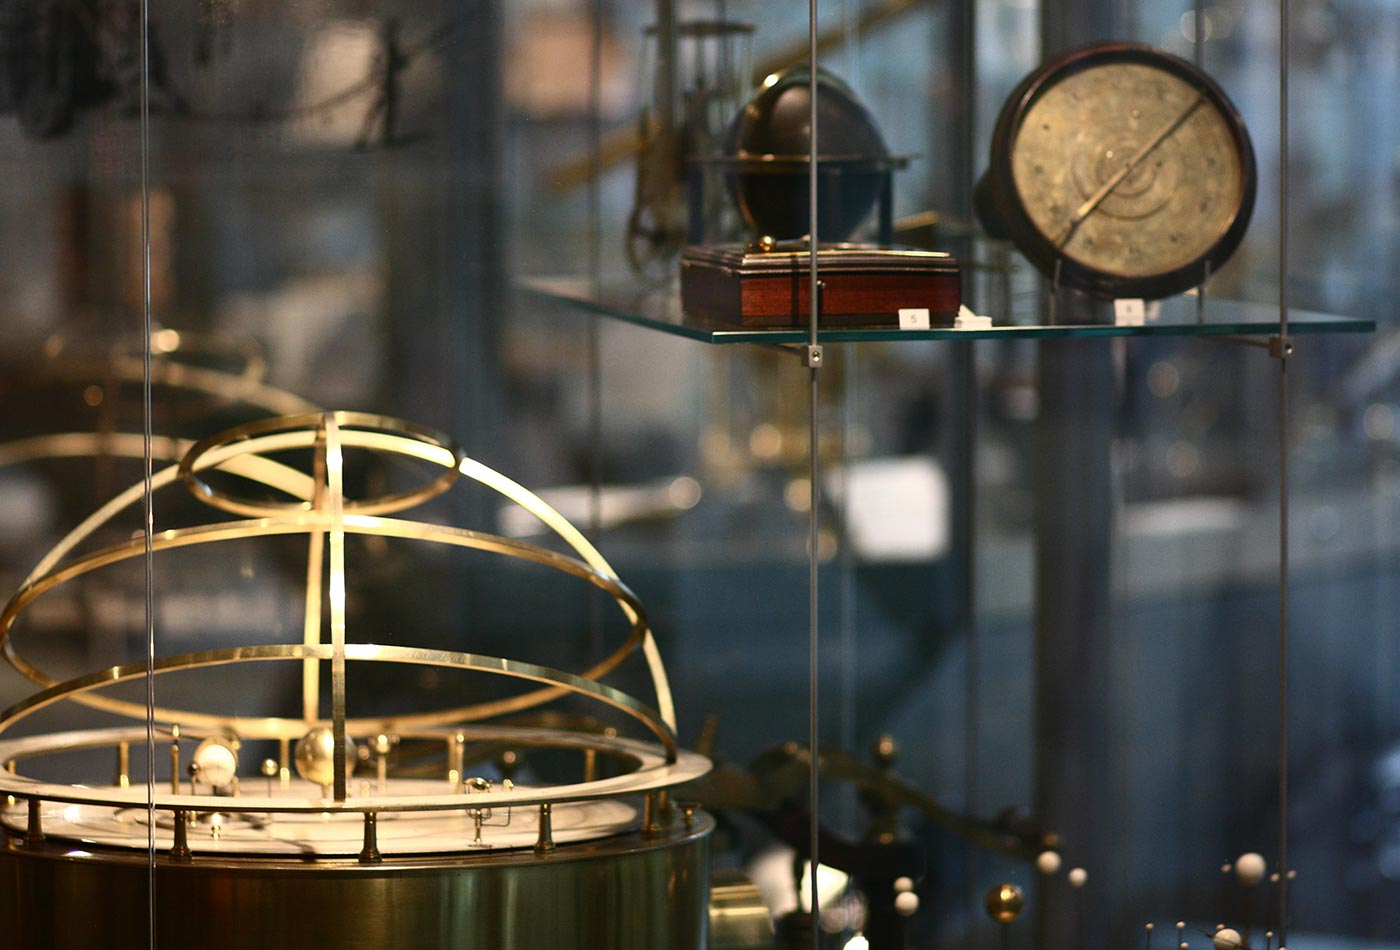 Historical scientific instruments on display in the Putnam Gallery of the Collection of Historical Scientific Instruments at Harvard University